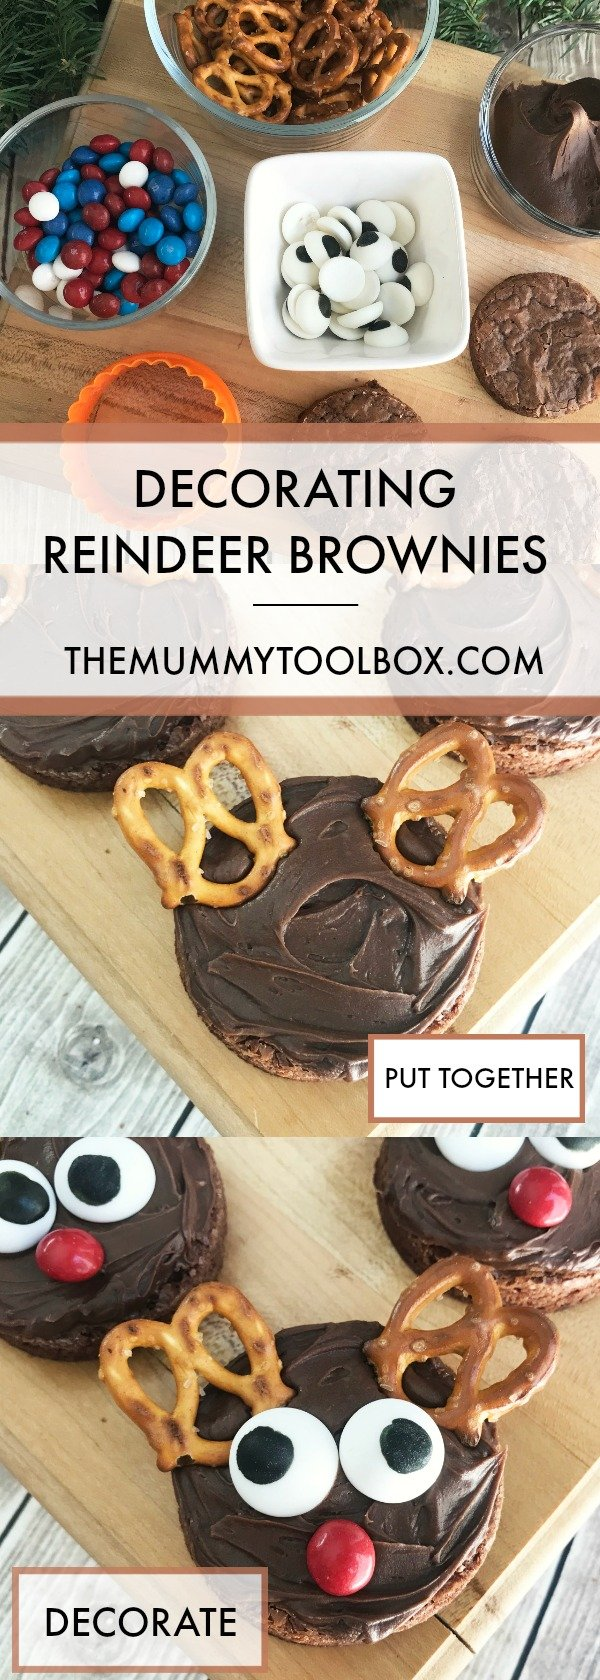 decorating reindeer brownies for festive fun with the kids. #christmasfood #christmas #treats #kidsactivities